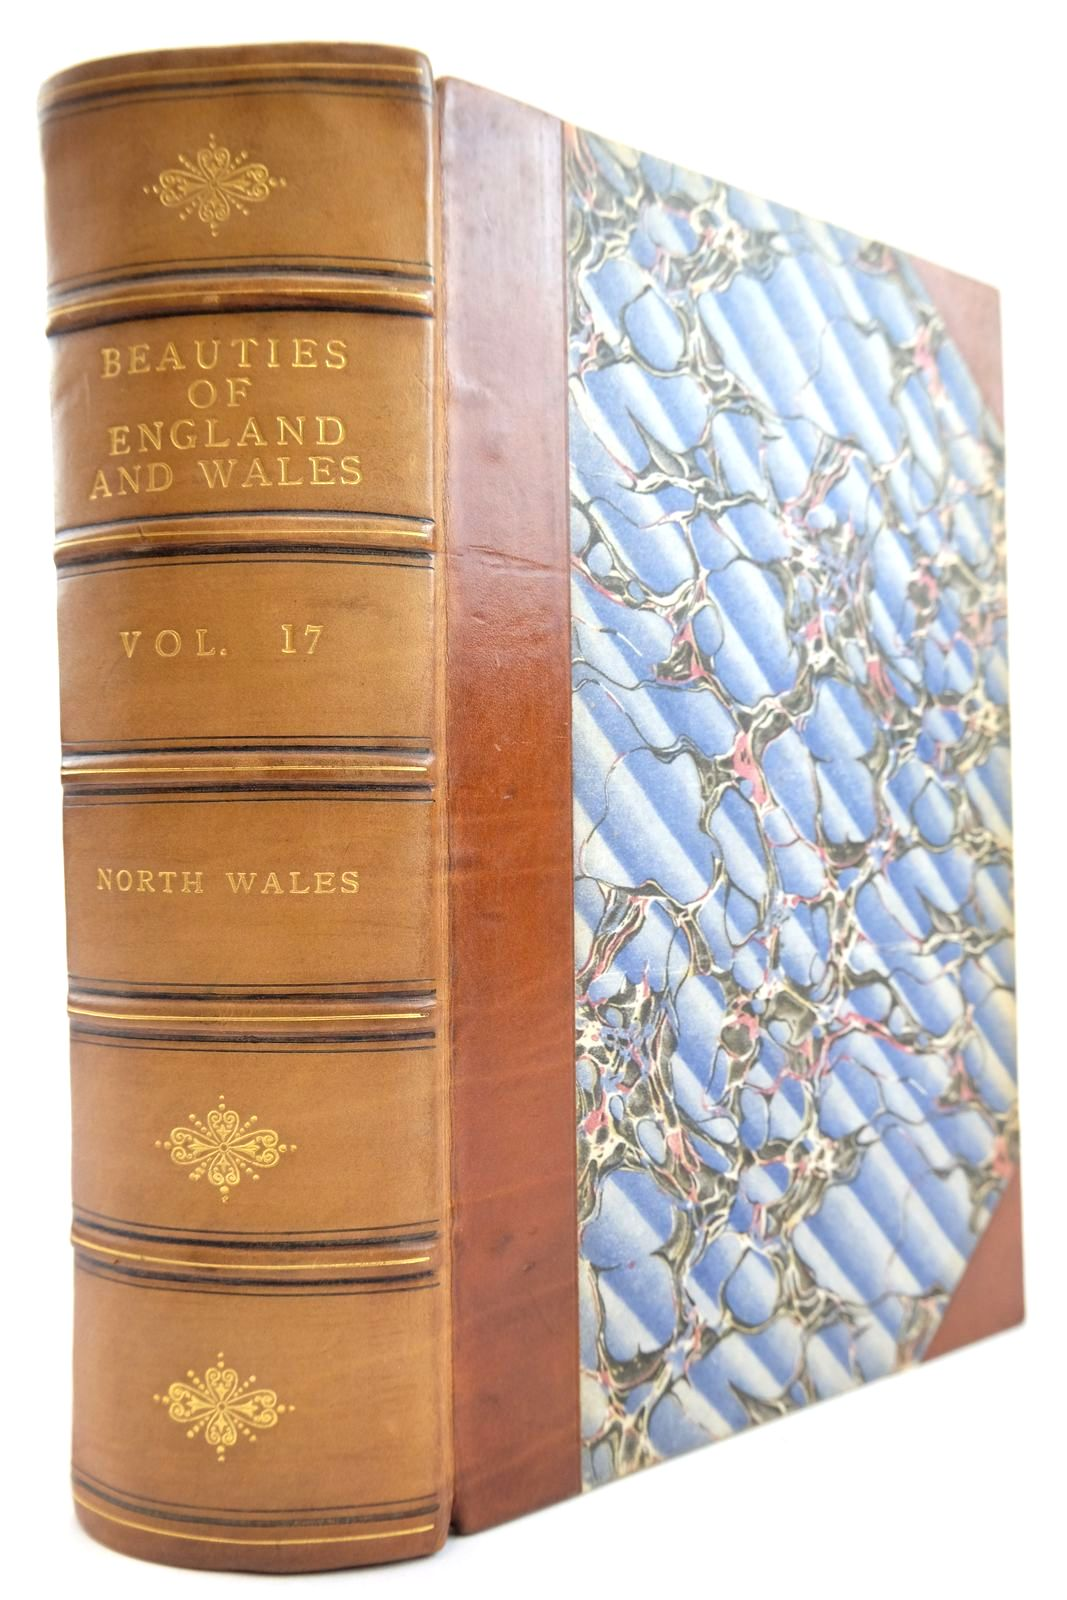 Photo of BEAUTIES OF ENGLAND AND WALES VOL. XVII - PART I NORTH WALES- Stock Number: 2134134